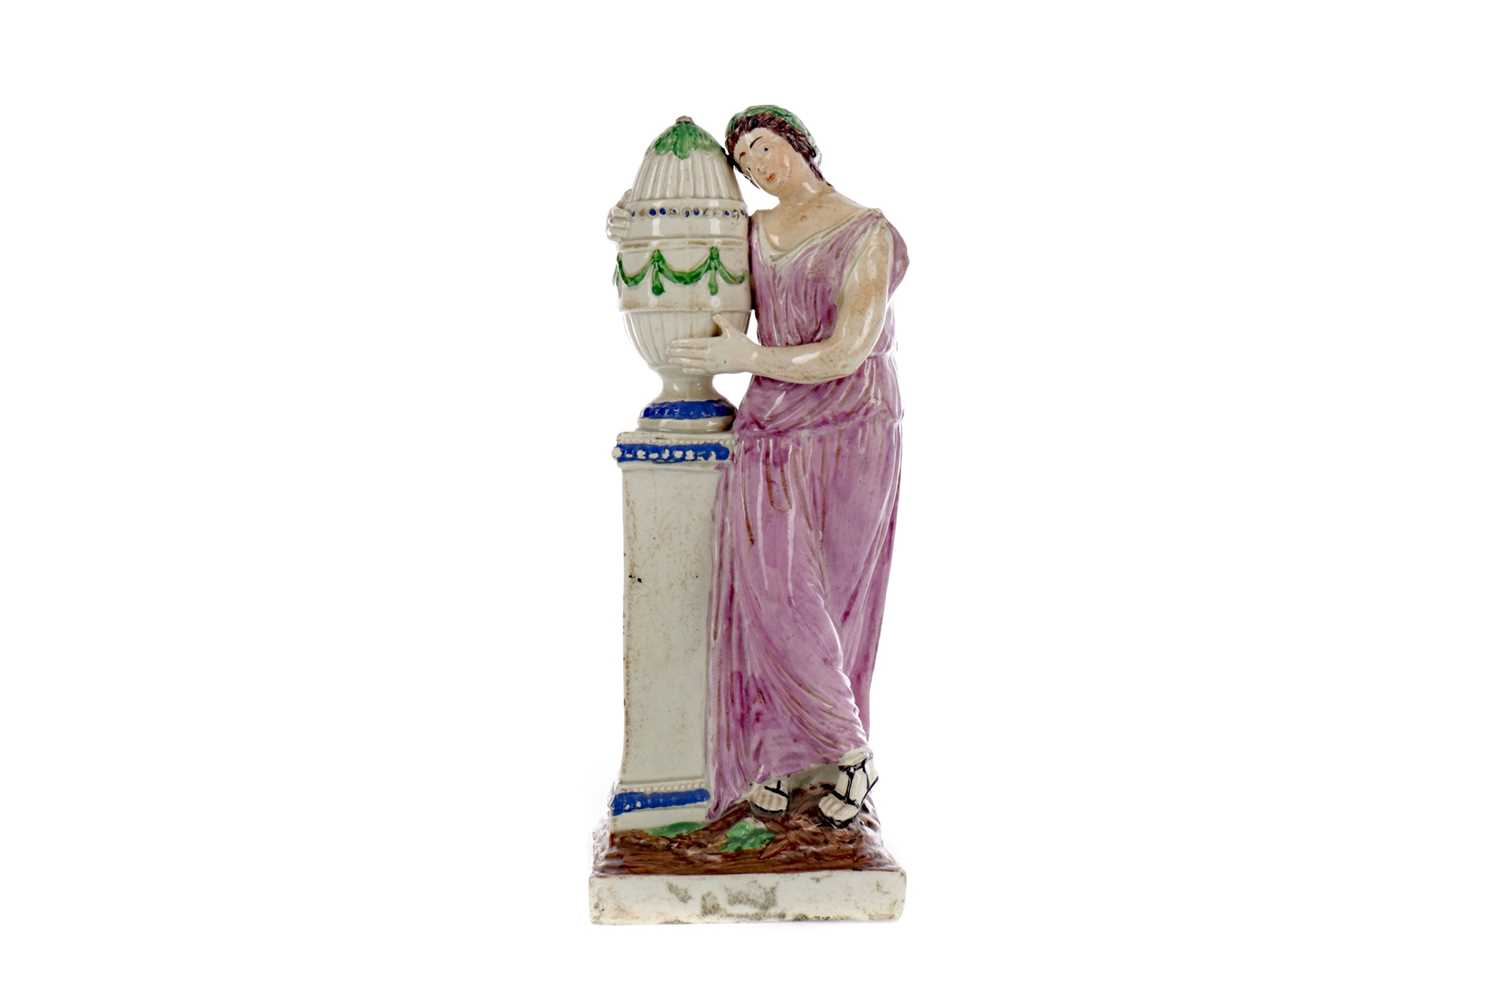 Lot 22 - AN EARLY 19TH CENTURY STAFFORDSHIRE CREAMWARE FIGURE OF ANDROMACHE